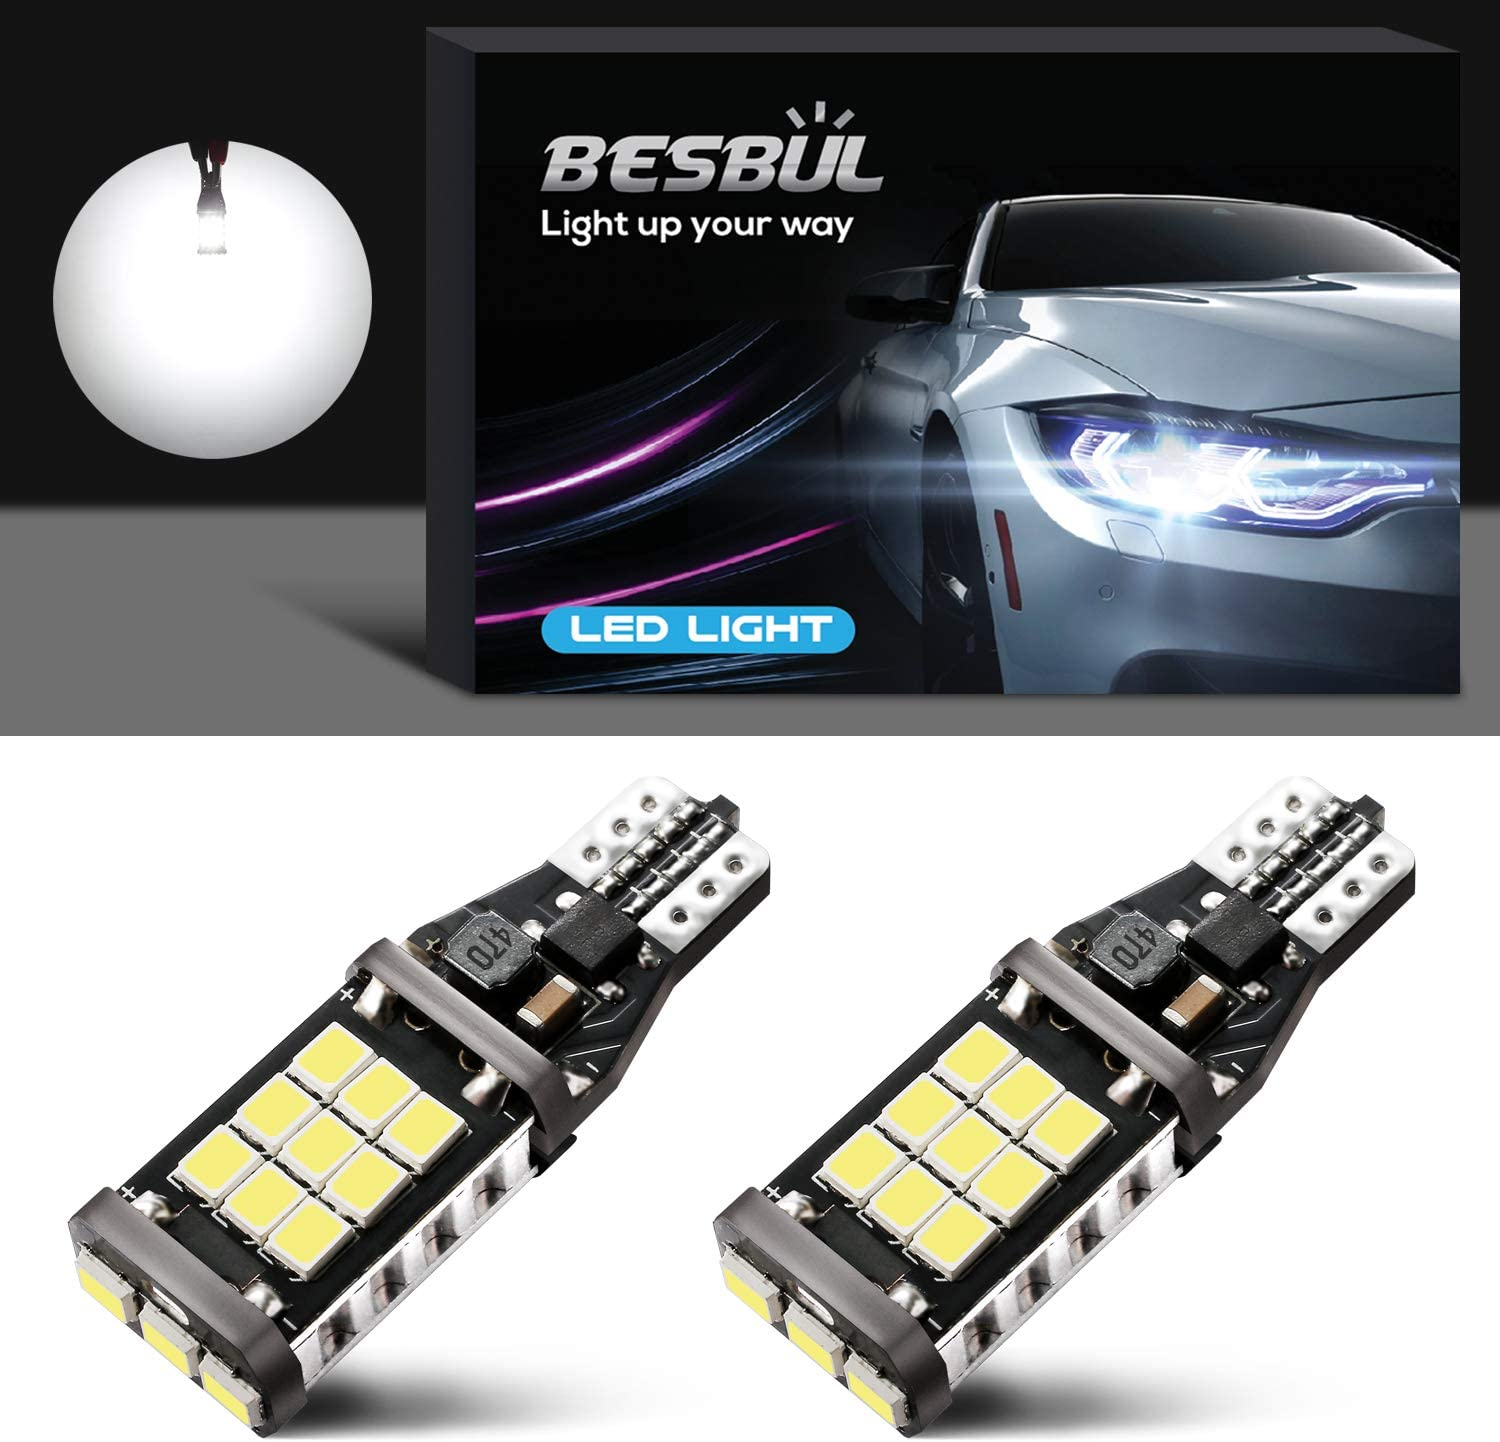 Besbul 921 LED Bulb, 912 Reverse Lights Extremely Bright 2835 21SMD Canbus Error Free T15 LED Bulbs, 906 904 902 W16W Back Up Lights, 6000K Xenon White, Pack of 2